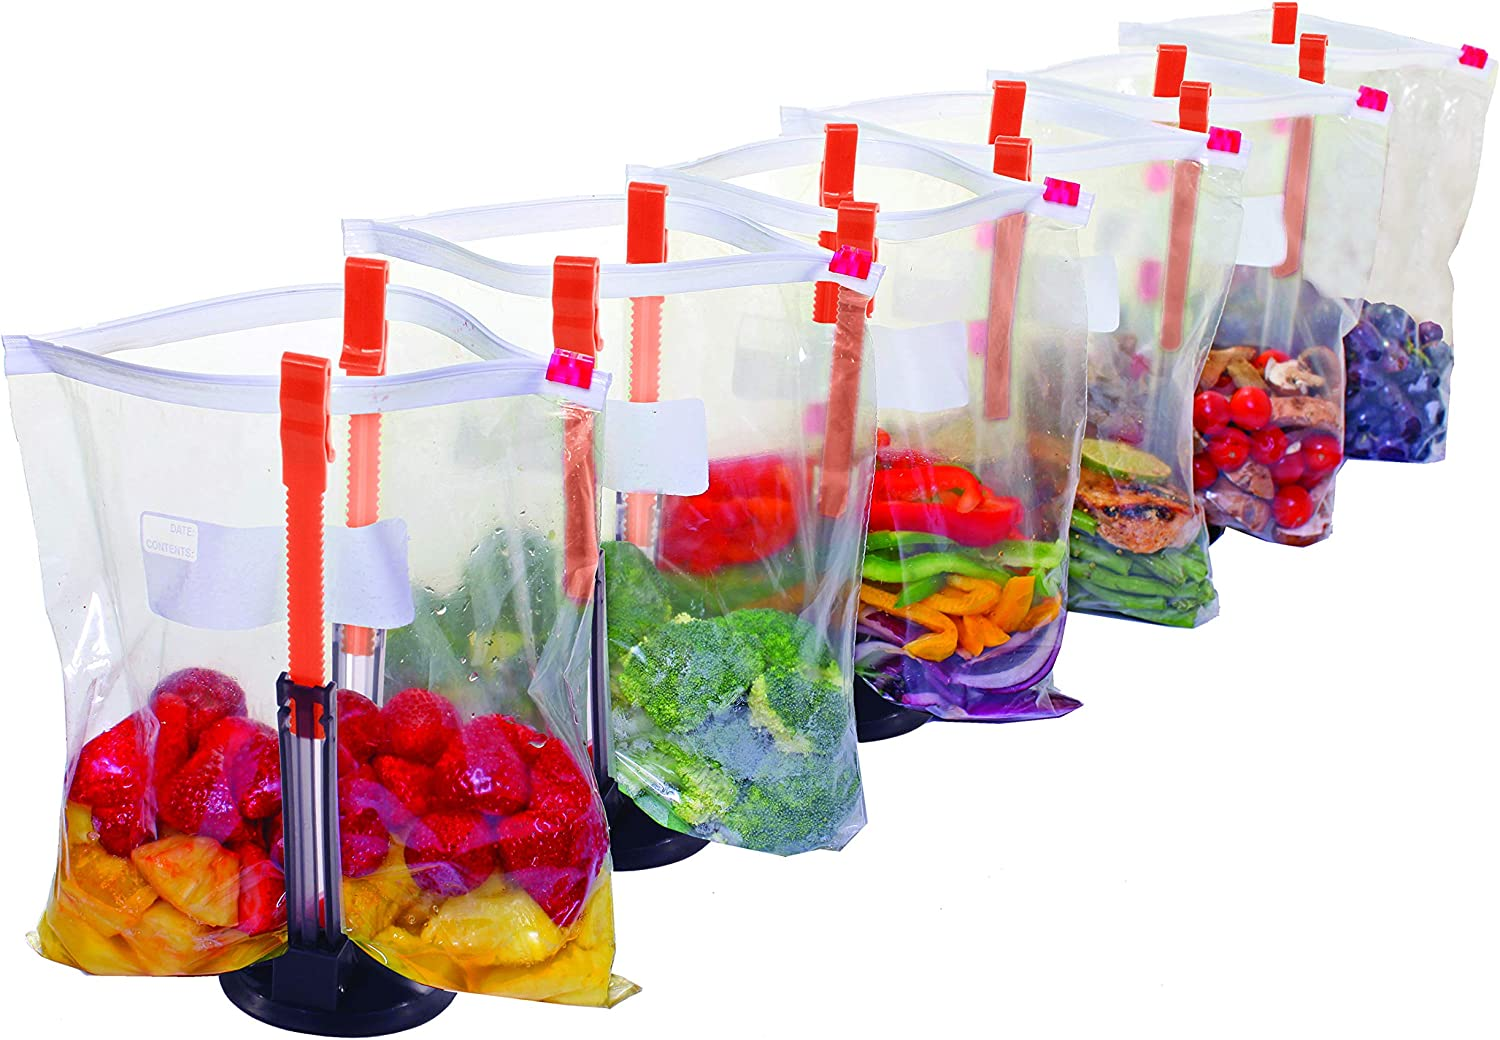 Jokari Suction Cup Fortified Baggy Rack 6 Pack For More Stability When Filling Plastic Freezer Storage Zip Lock Bags. Sturdy Clips Hold Containers Open to Pour Leftovers and Meal Prep Ingredients.